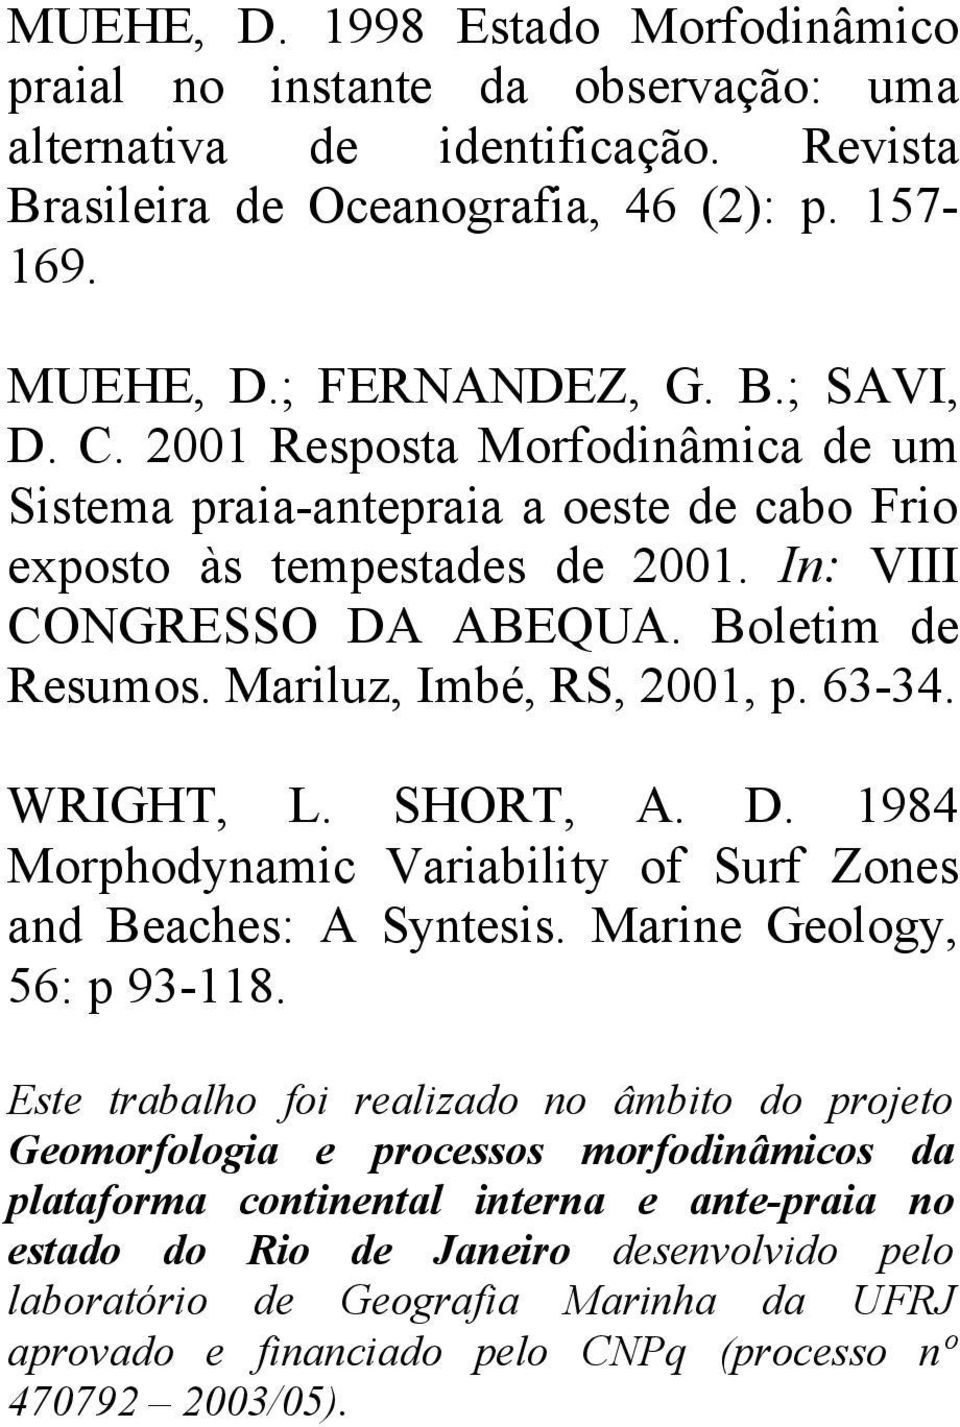 WRIGHT, L. SHORT, A. D. 1984 Morphodynamic Variability of Surf Zones and Beaches: A Syntesis. Marine Geology, 56: p 93-118.